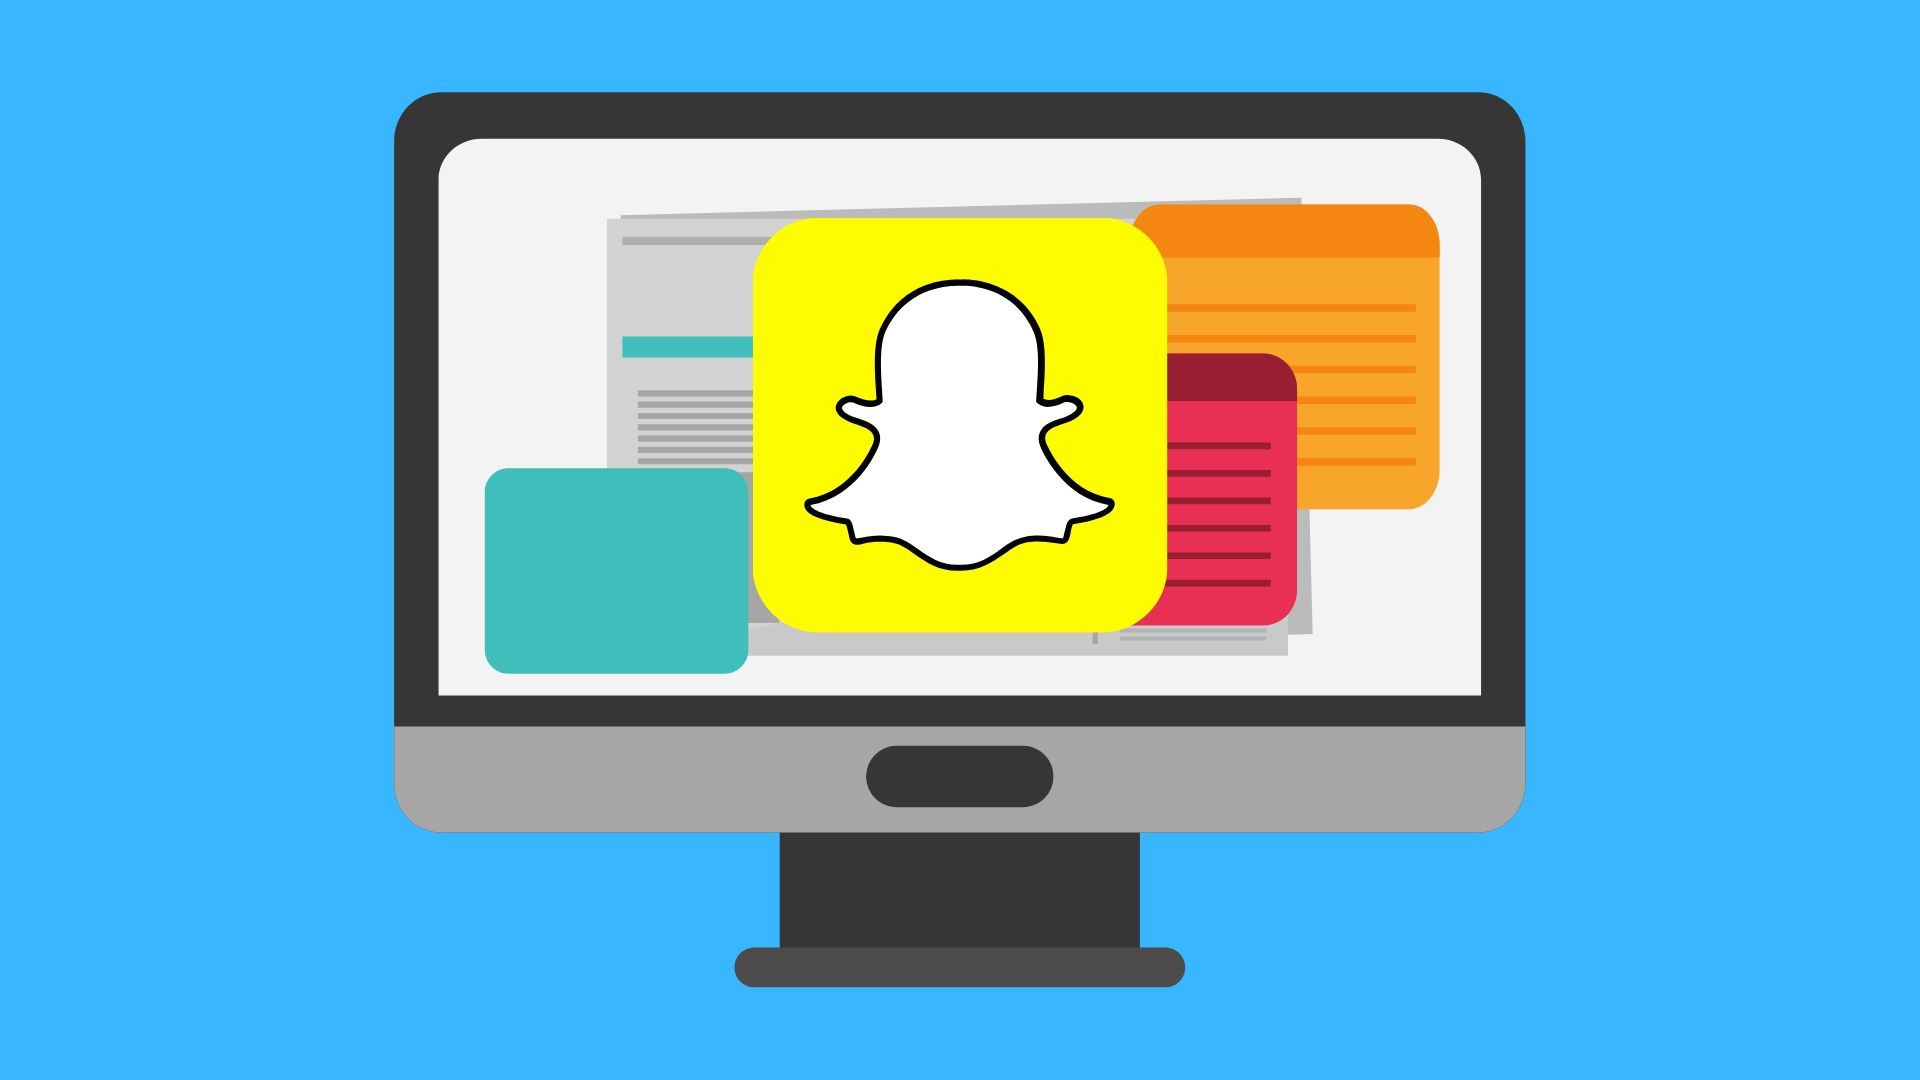 How to Get Snapchat on PC without using Blue stacks